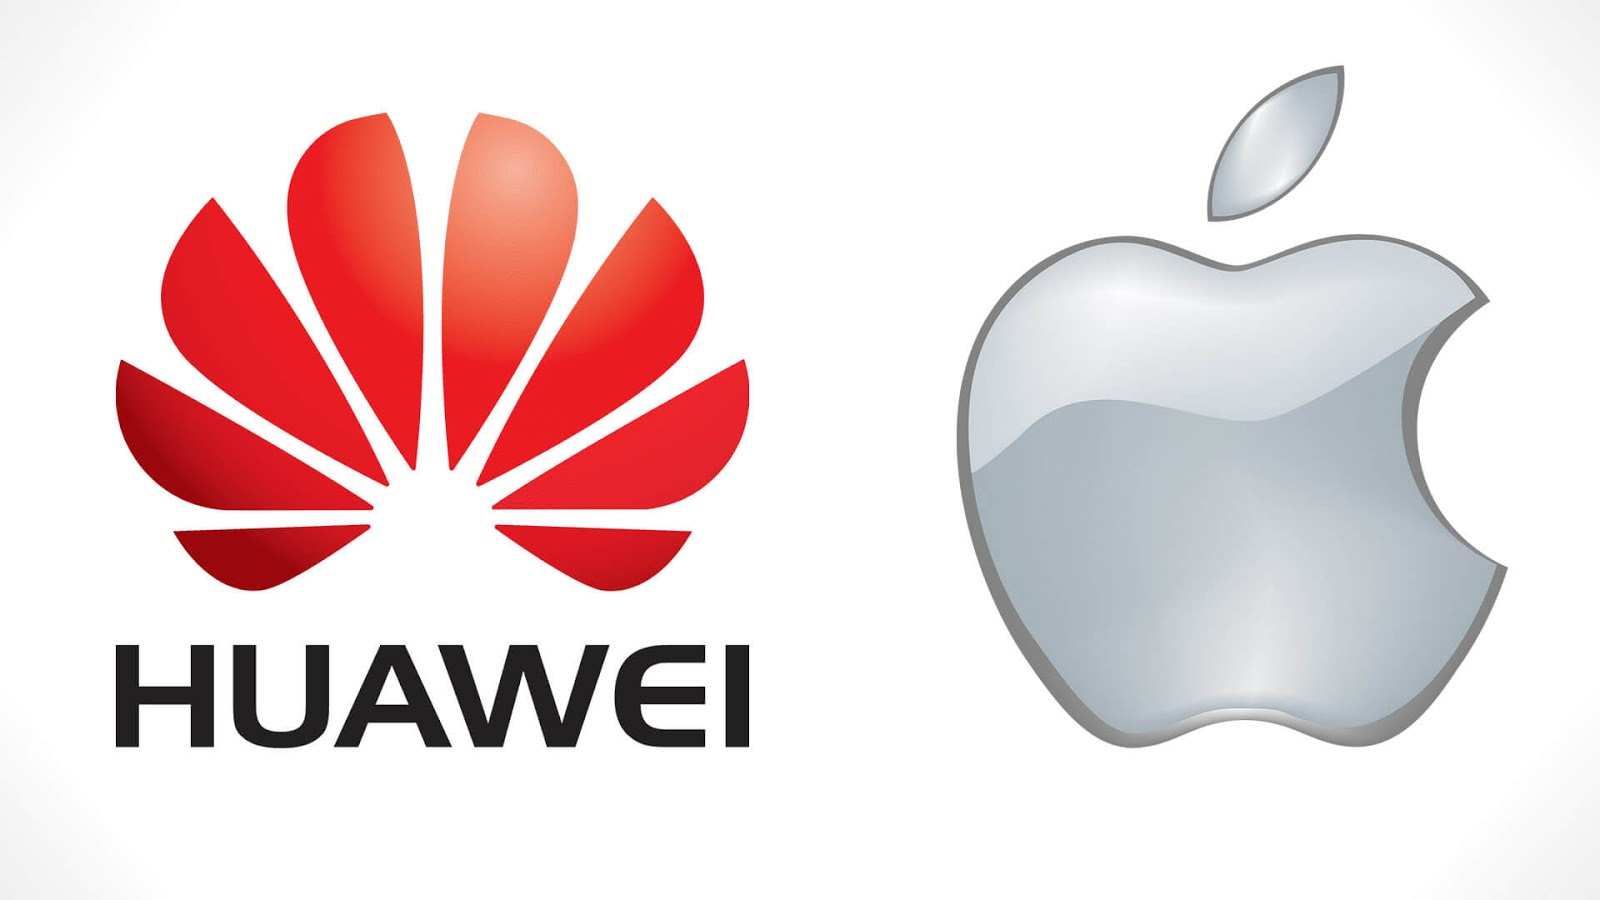 Huawei Beats Apple In Smartphone Sales | As World No. 2 Smartphone Seller